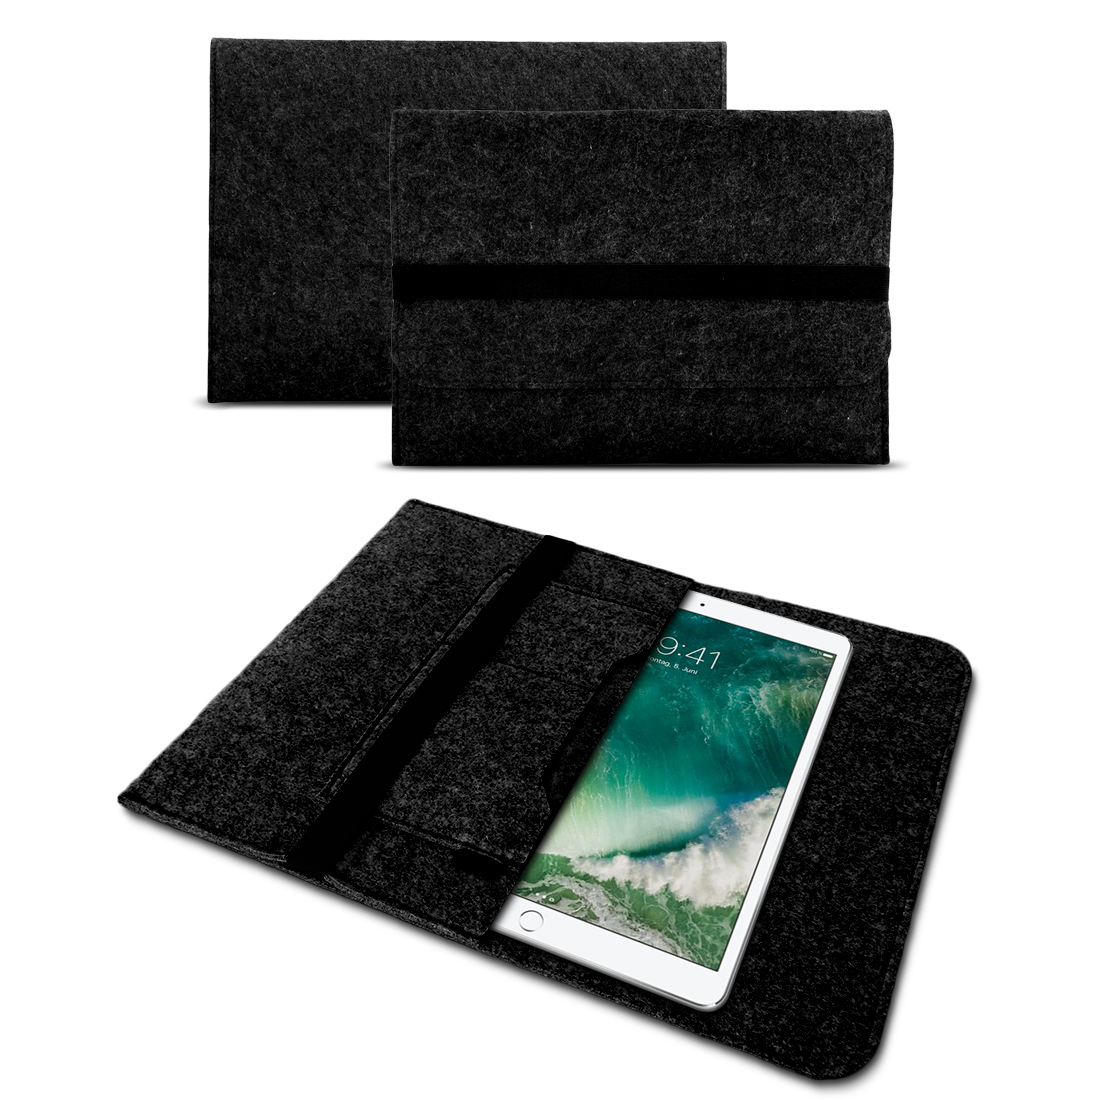 sleeve h lle f r apple ipad 2017 2018 tasche filz schutzh lle cover tablet case smartphone. Black Bedroom Furniture Sets. Home Design Ideas